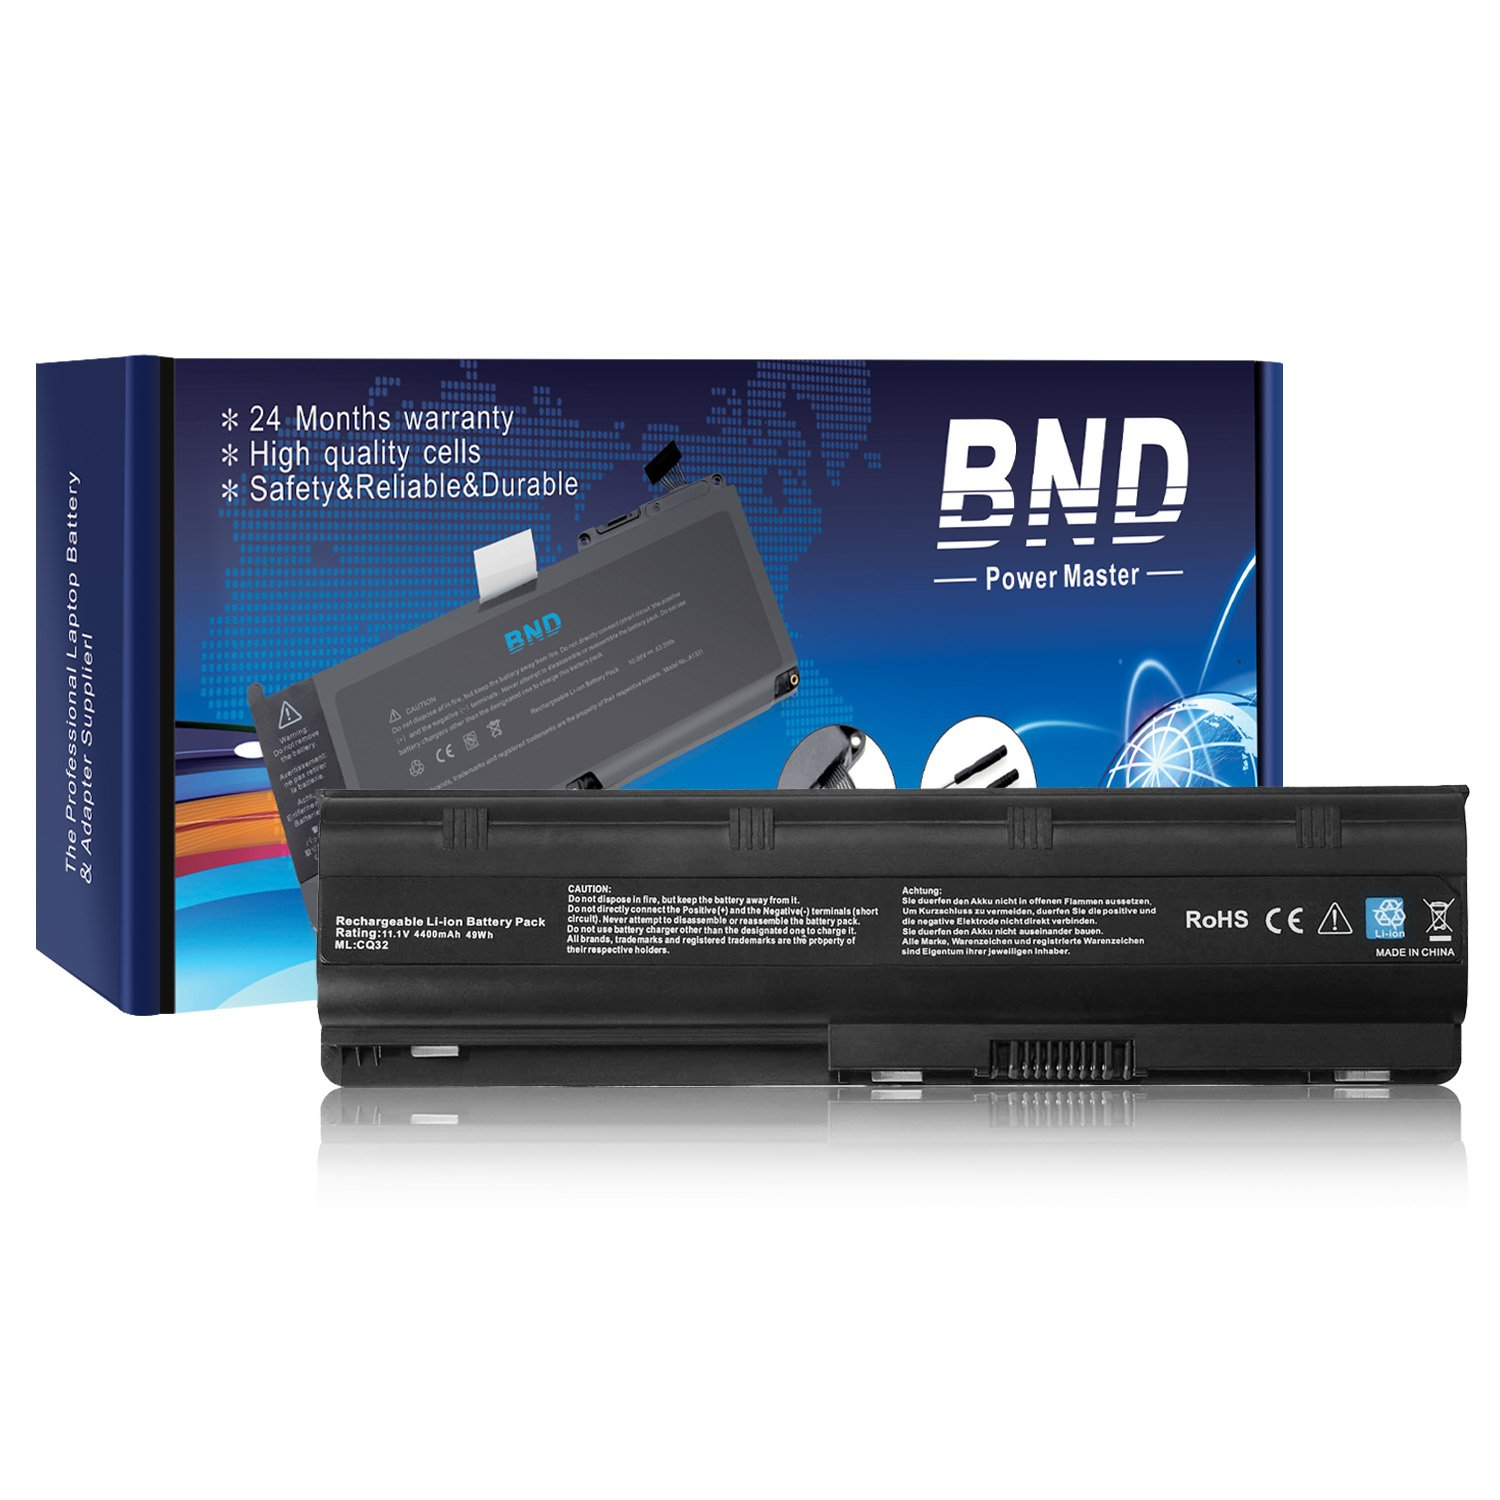 BND Laptop Battery Replacement for HP MU06 / MU09 / 593553-001/593554-001 / WD548AA / 636631-001/593550-001/593562-001 - 12 Months Warranty[6-Cell 4400mAh]